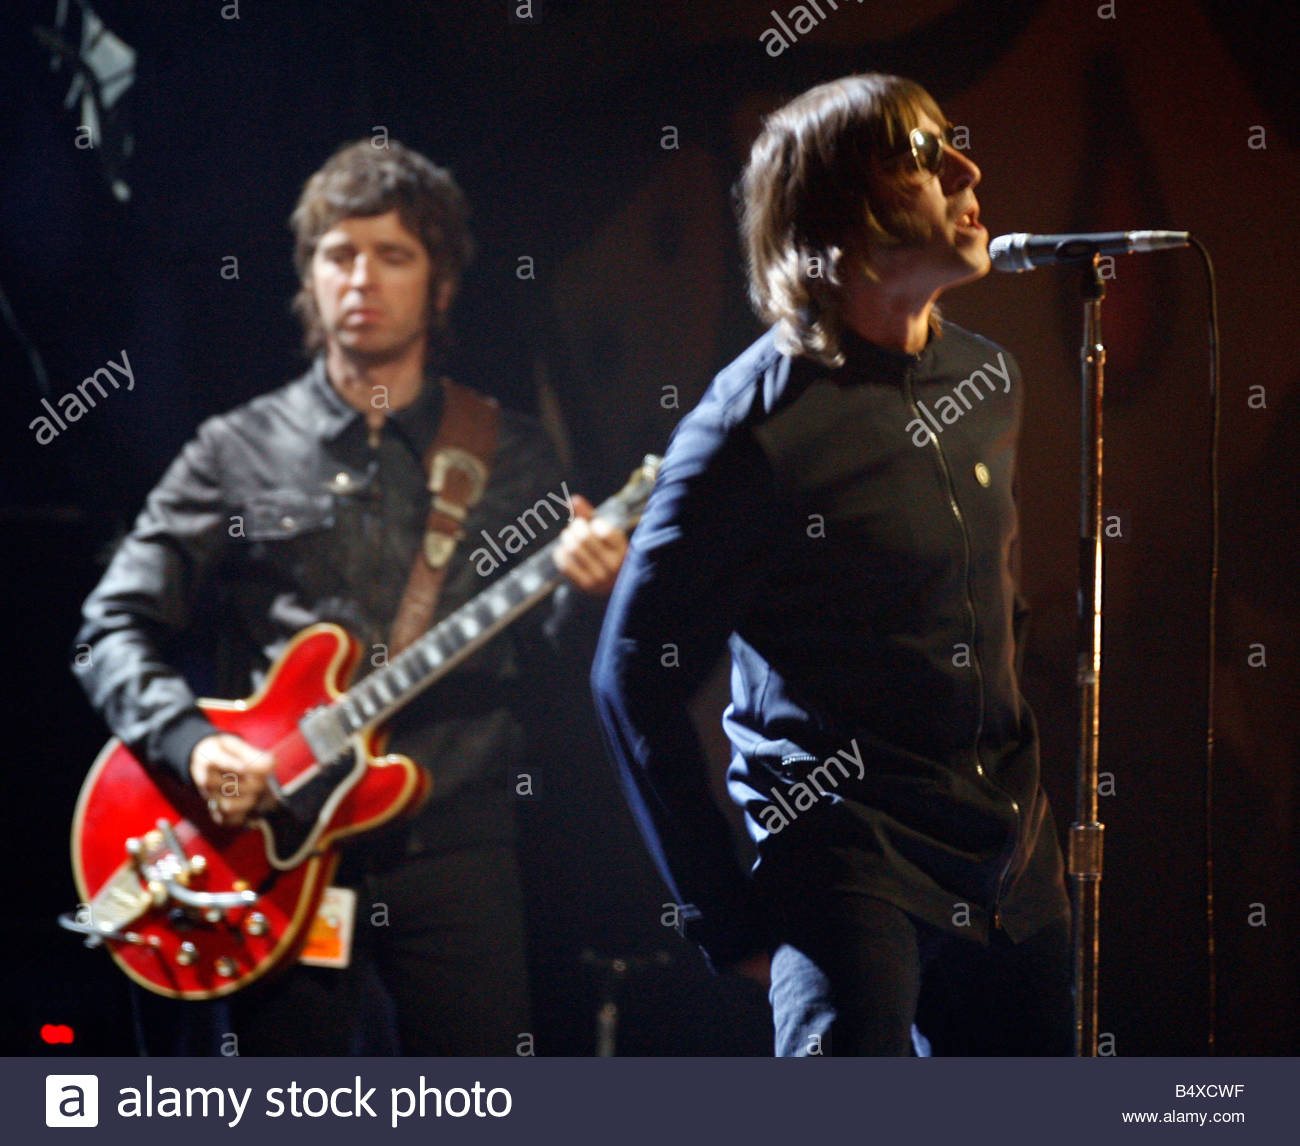 The 2007 Brit Awards with Mastercard, from London's Earls Court on Valentines Day 14th Feb. 2007. Liam Gallagher. - Stock Image